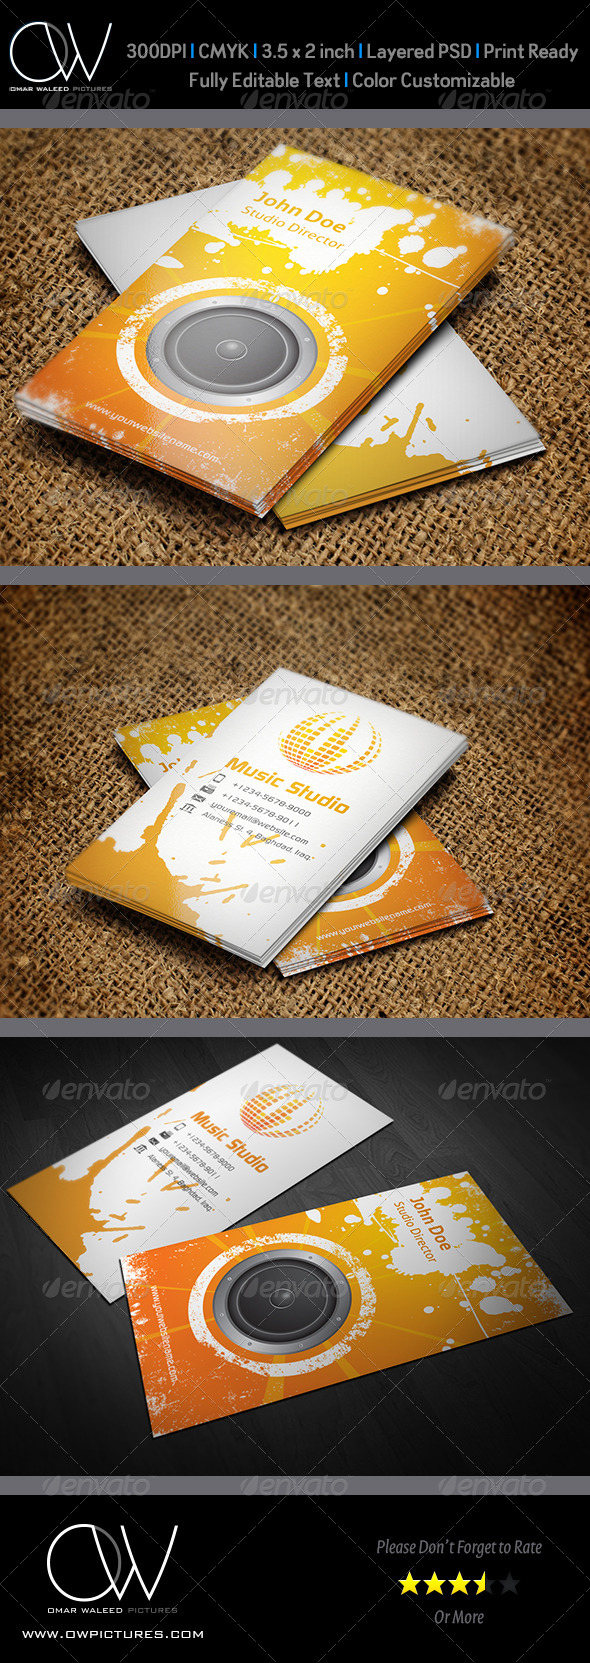 Music Studio Business Card Vol.2 - Business Cards Print Templates